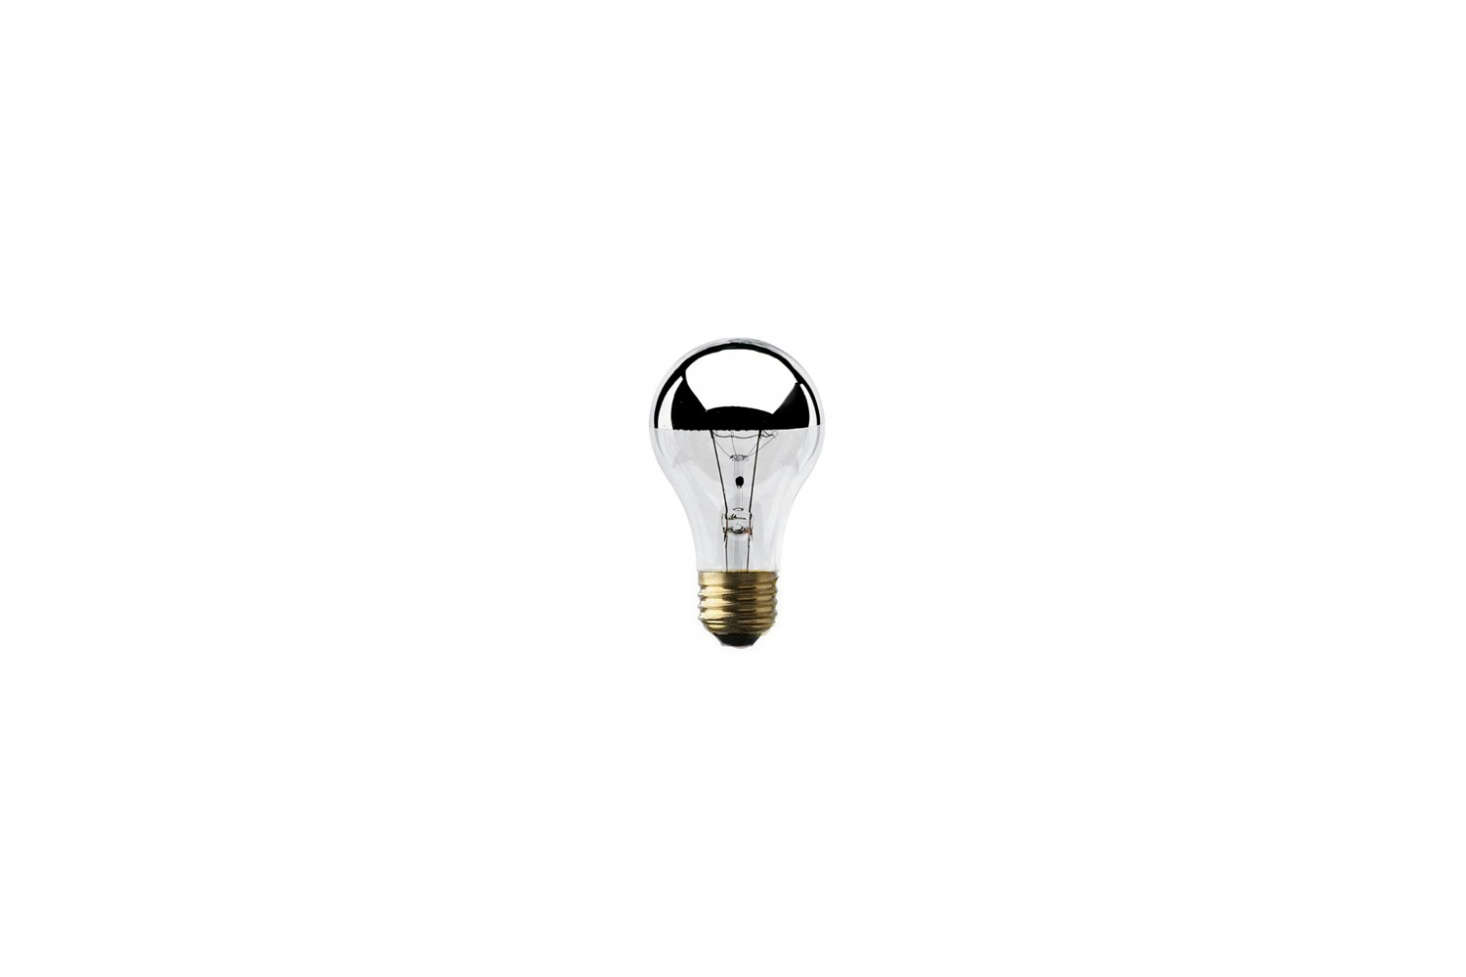 Find a pack of two, four, six, or 12 Bulbrite Half Chrome 60W Bulbs; $16.62 for a pack of four on Amazon.